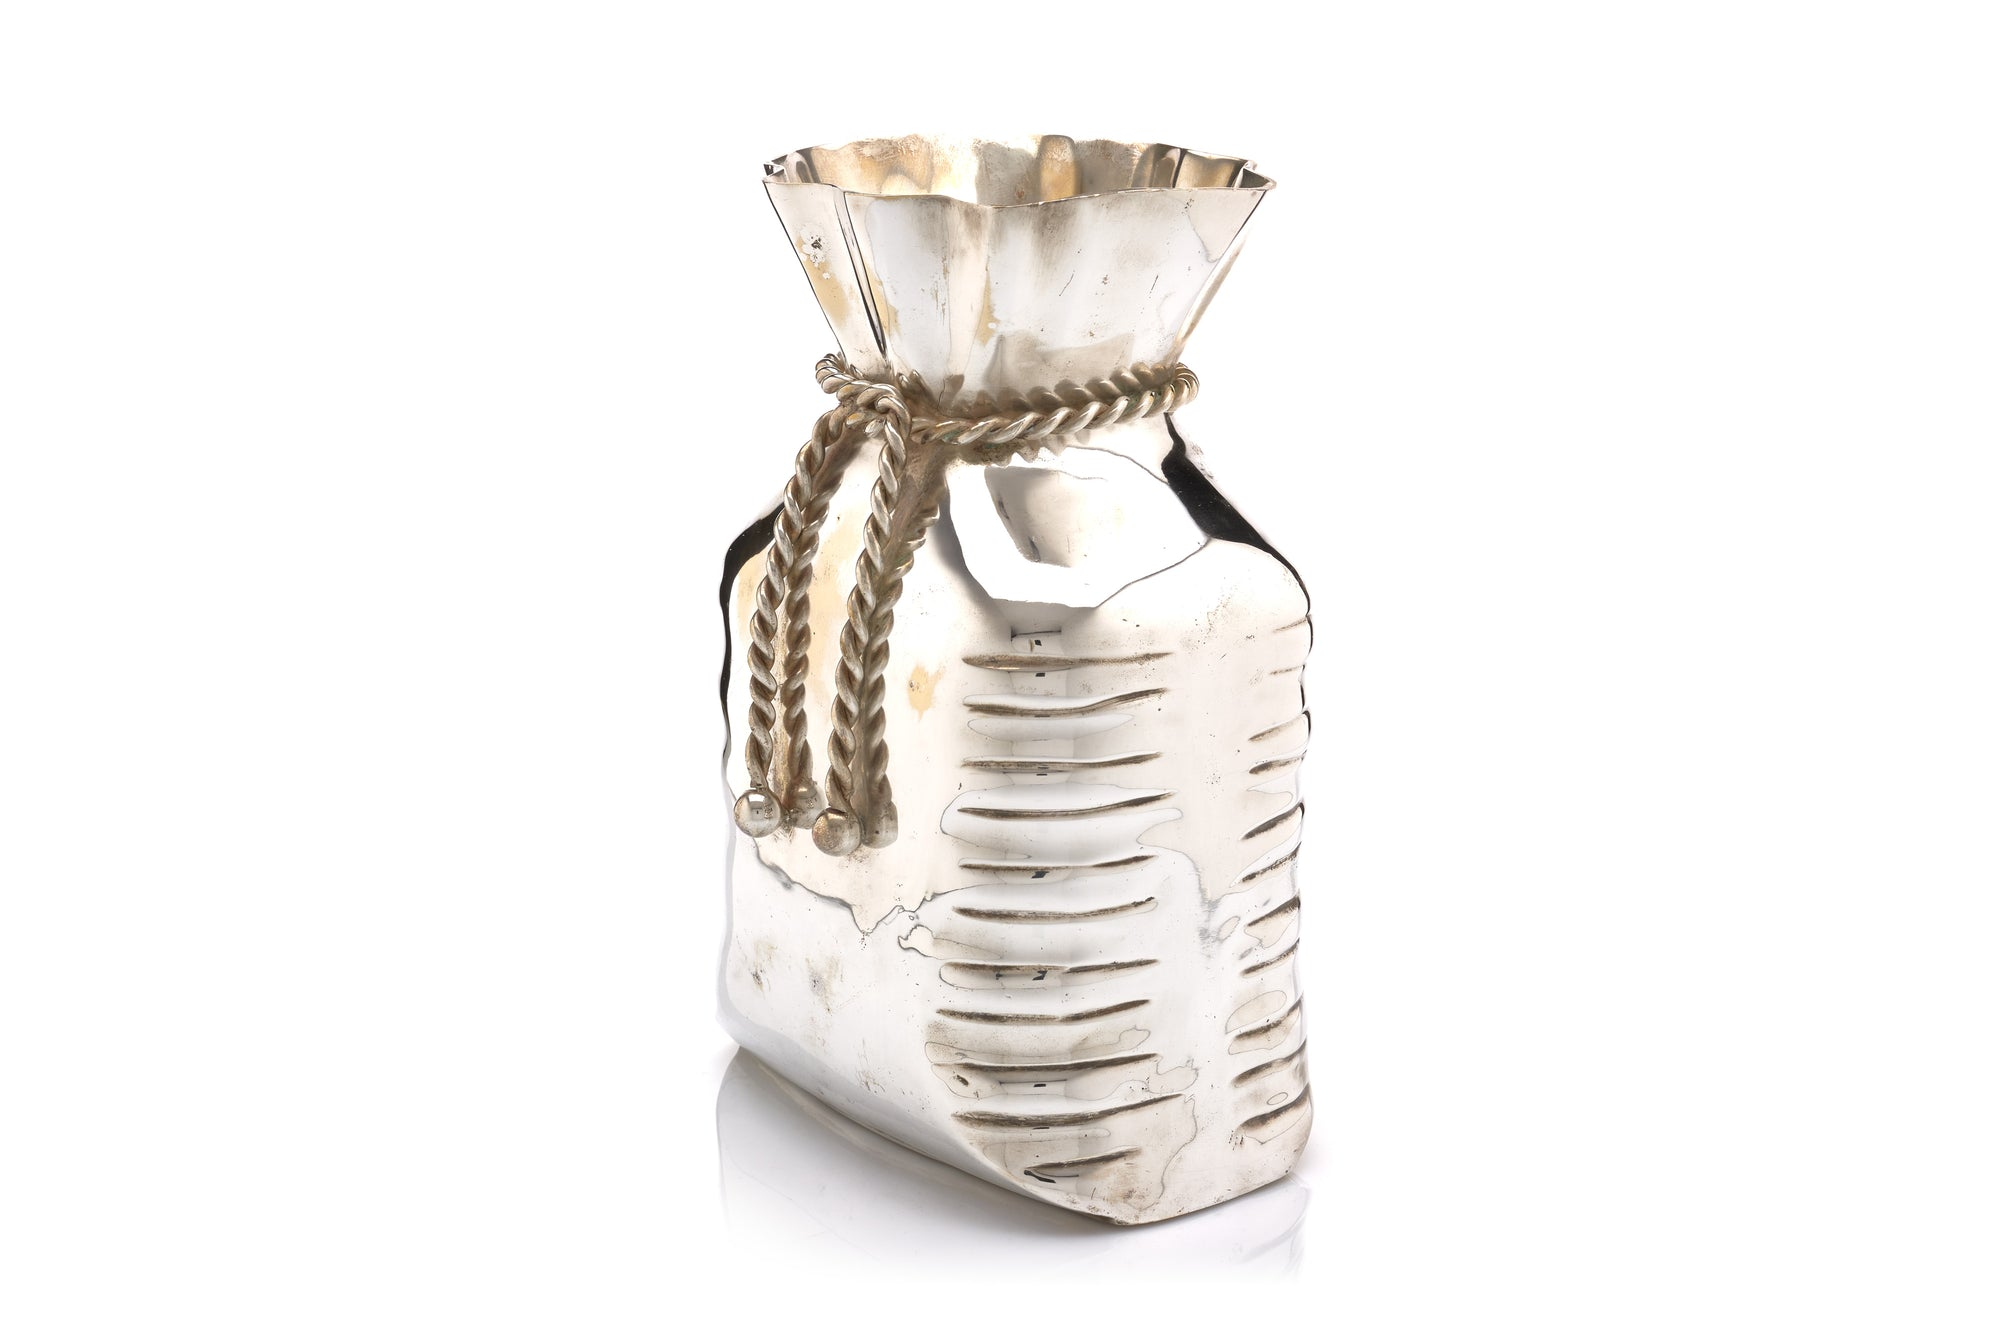 French Money Bag Vase